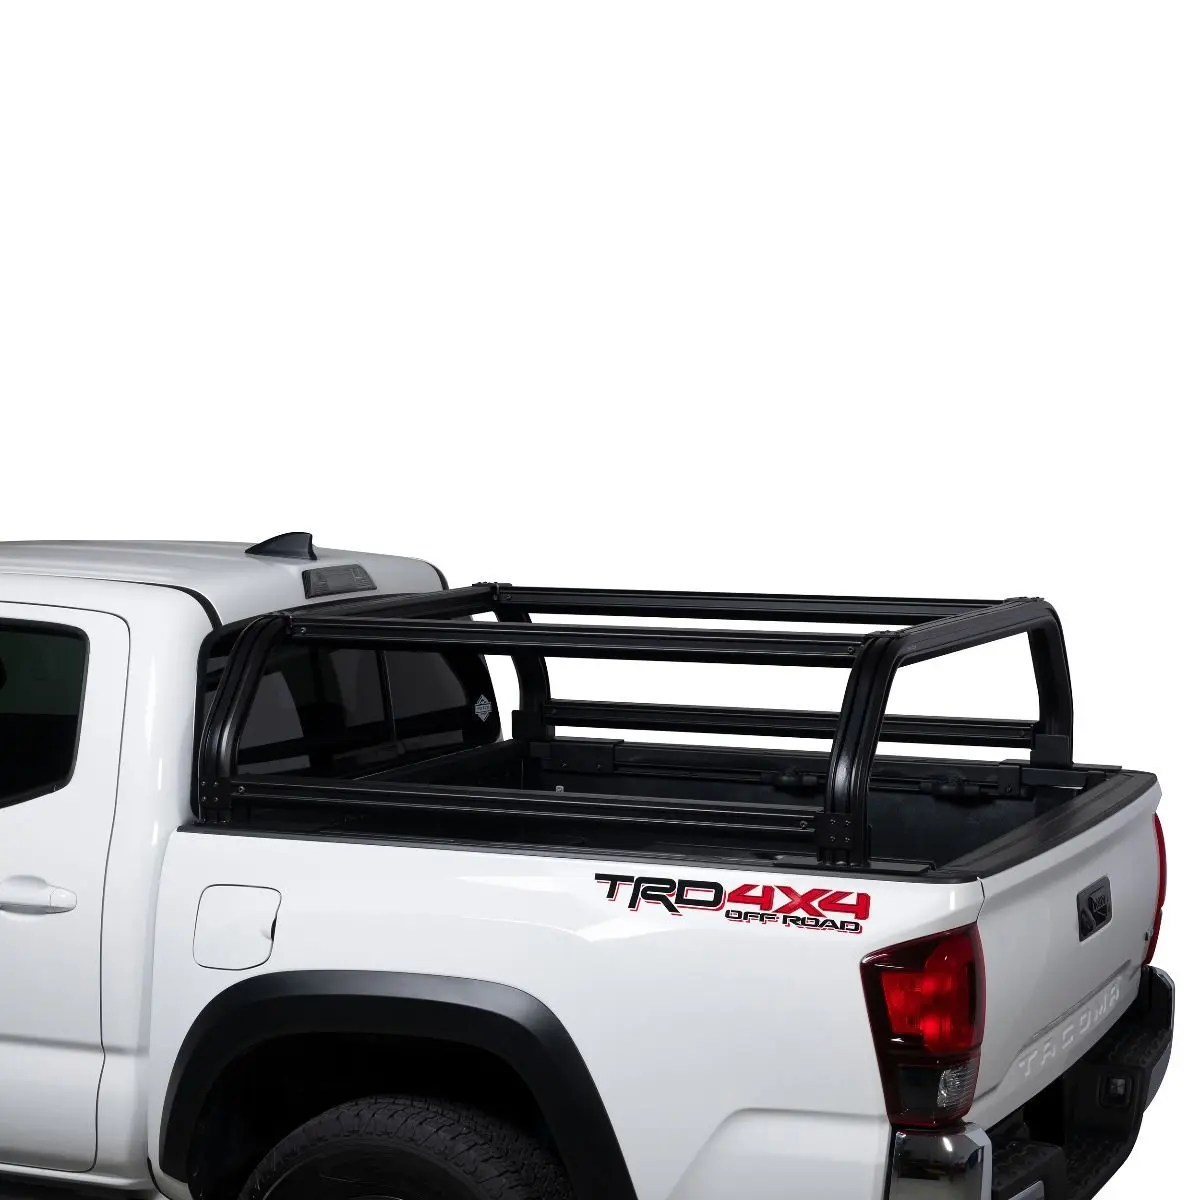 venturetec overland bed rack for toyota tacoma 2016 to present with 5 ft bed